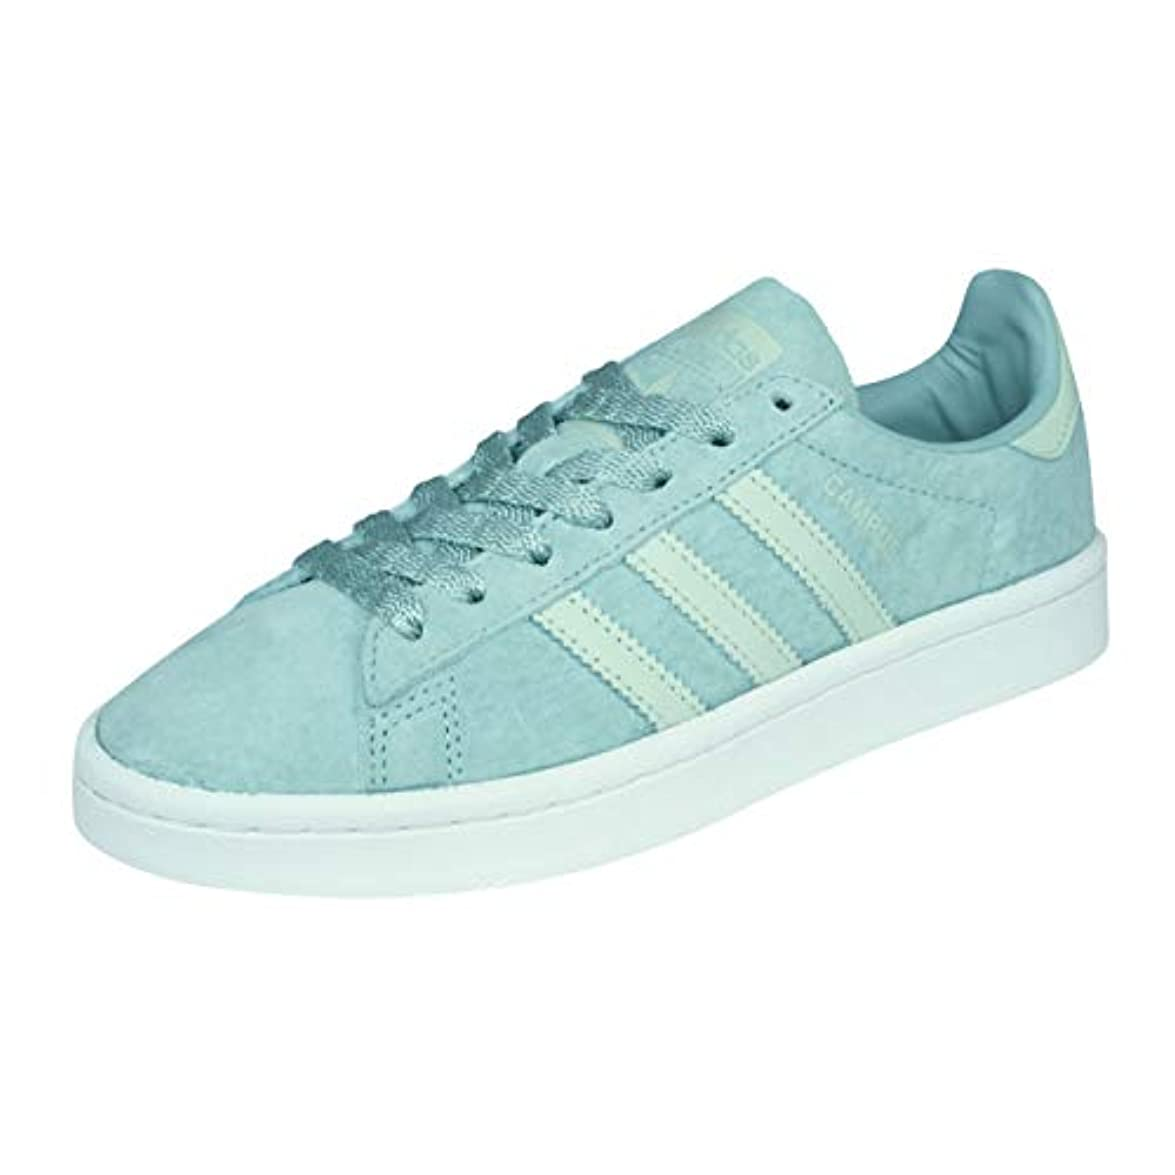 Adidas Campus W Tactile Green Linen White